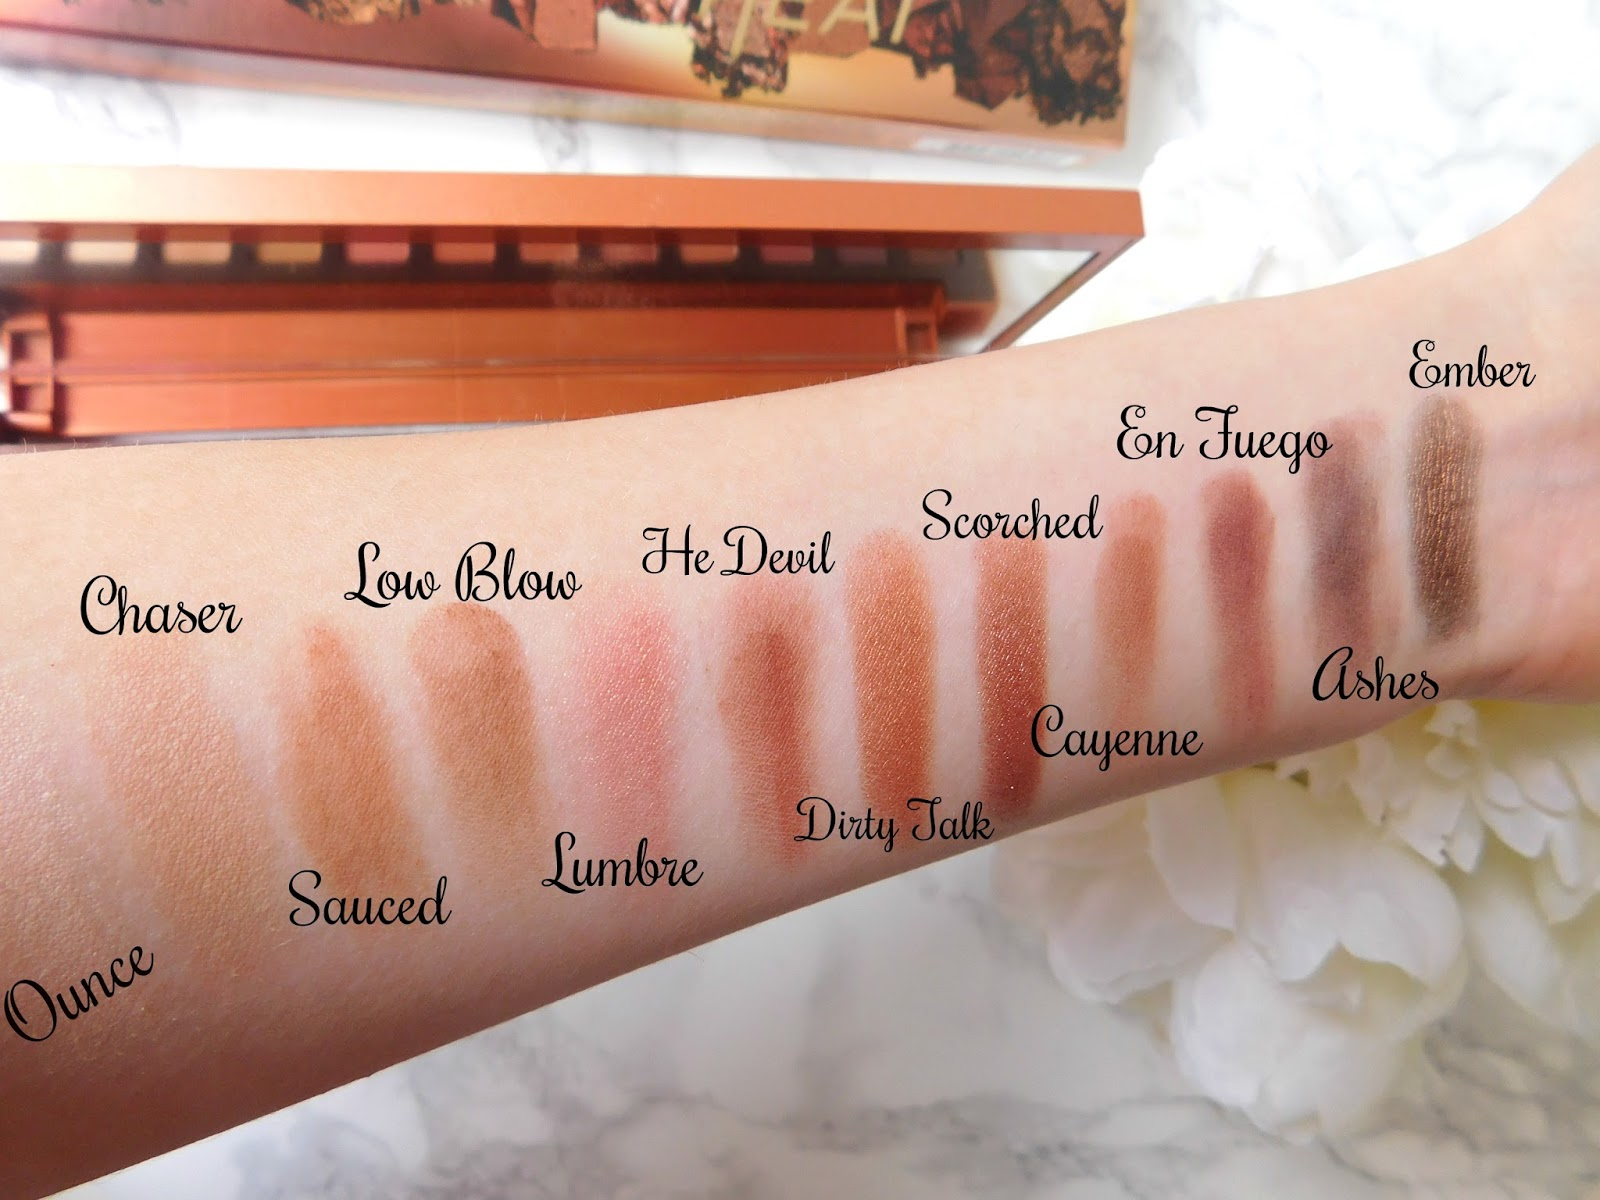 Naked Heat Palette Review, Urban Decay, Eyeshadow Palettes